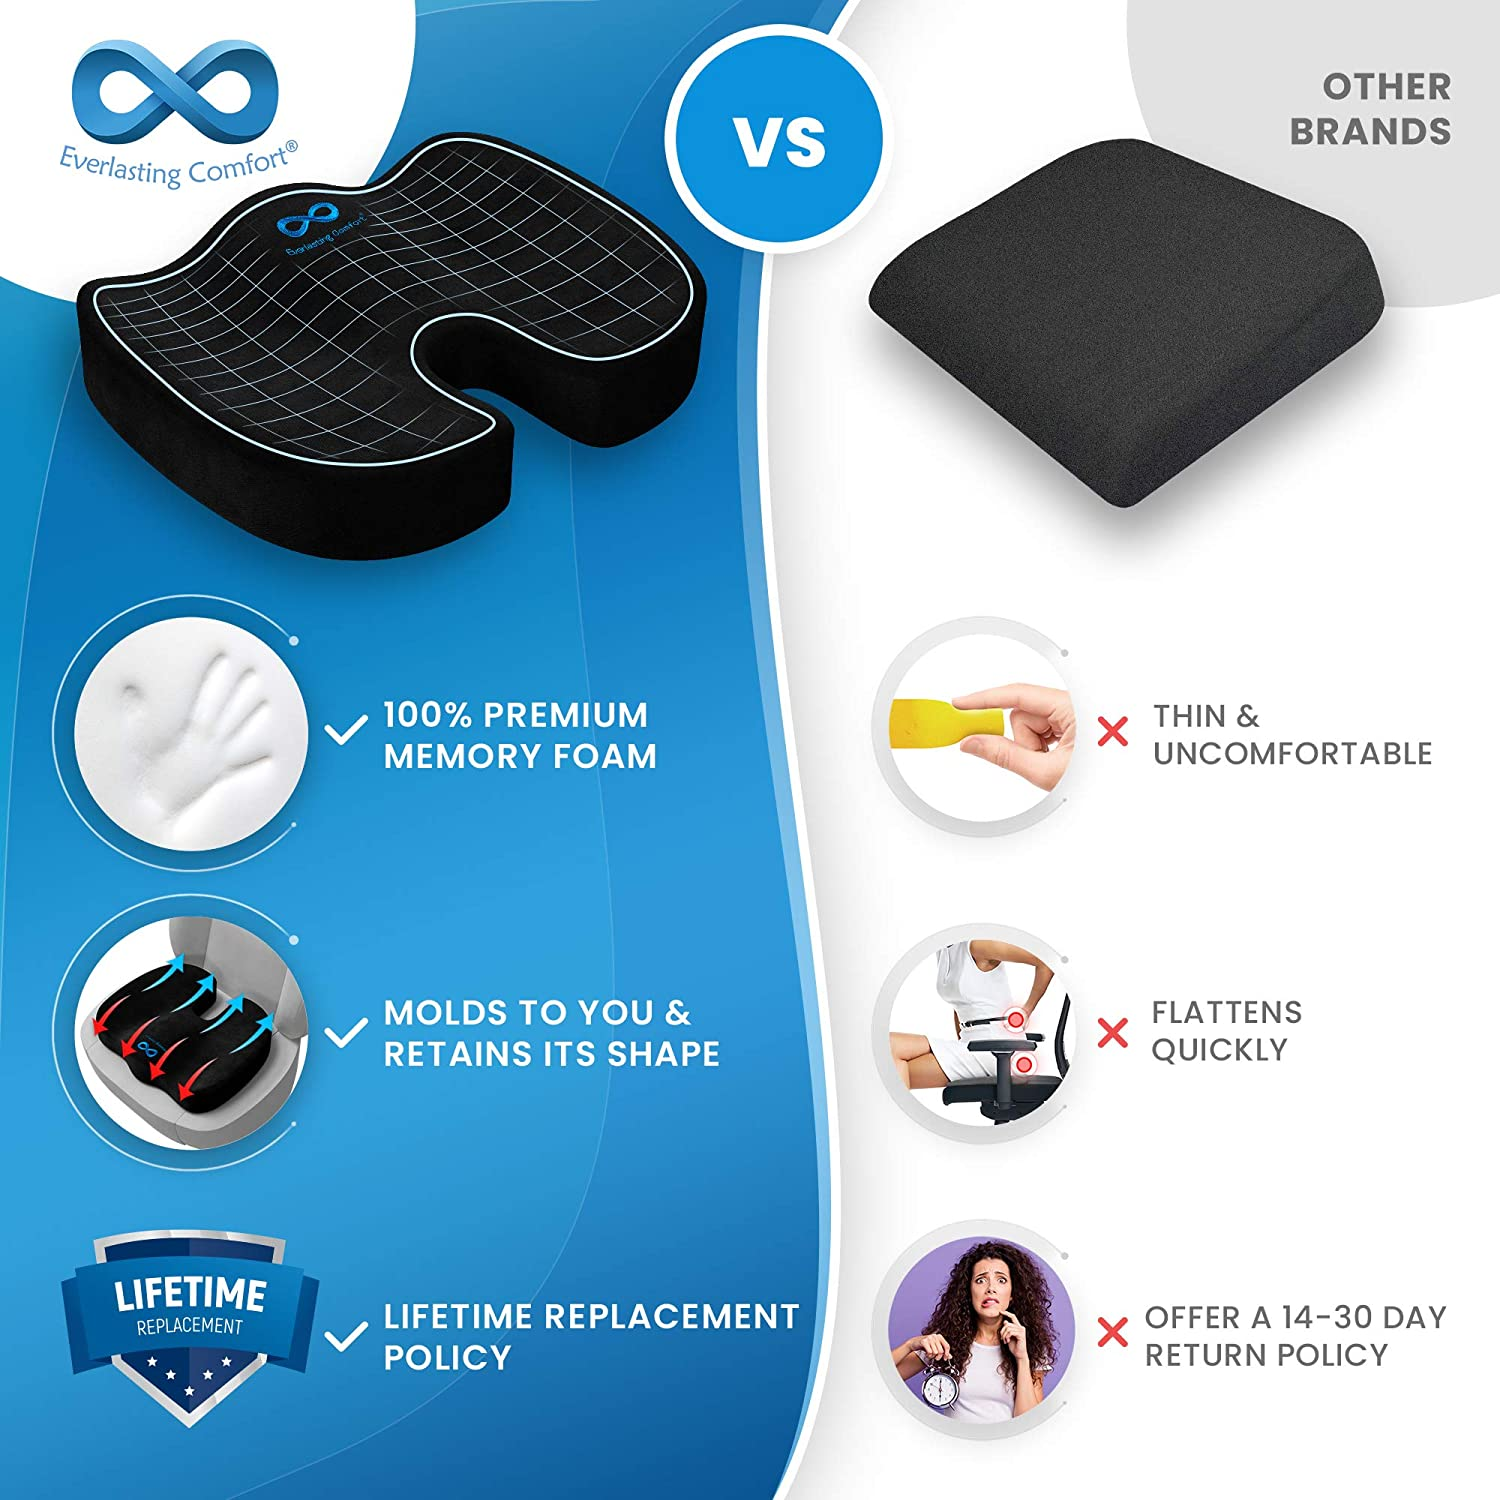 81tVtbFdQAL. SL1500 - What Are The Best Seat Cushion For Buttock Pain That Help You Sit Comfortably - ChairPicks